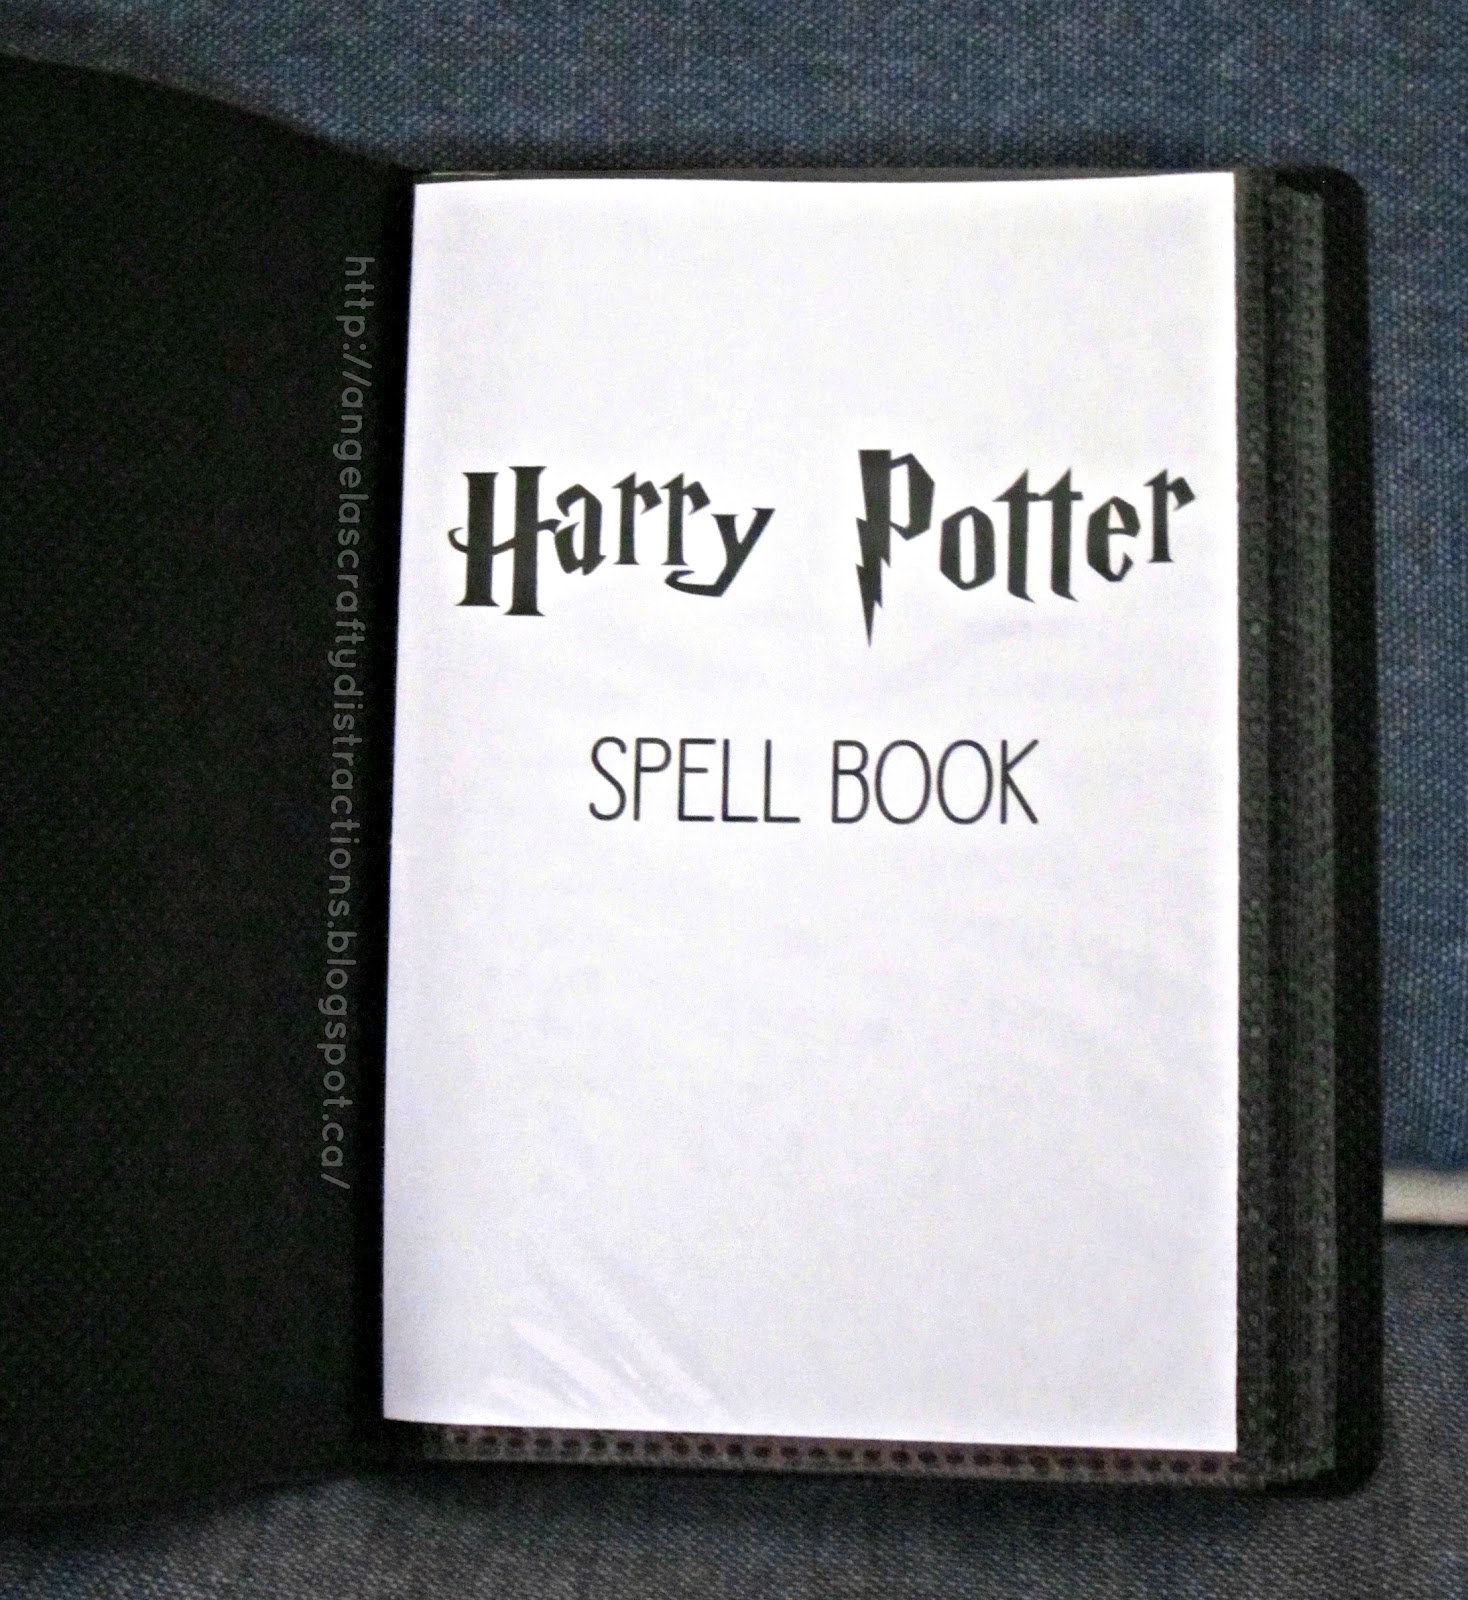 Harry Potter Book Is About ~ Crafty distractions a harry potter spell book